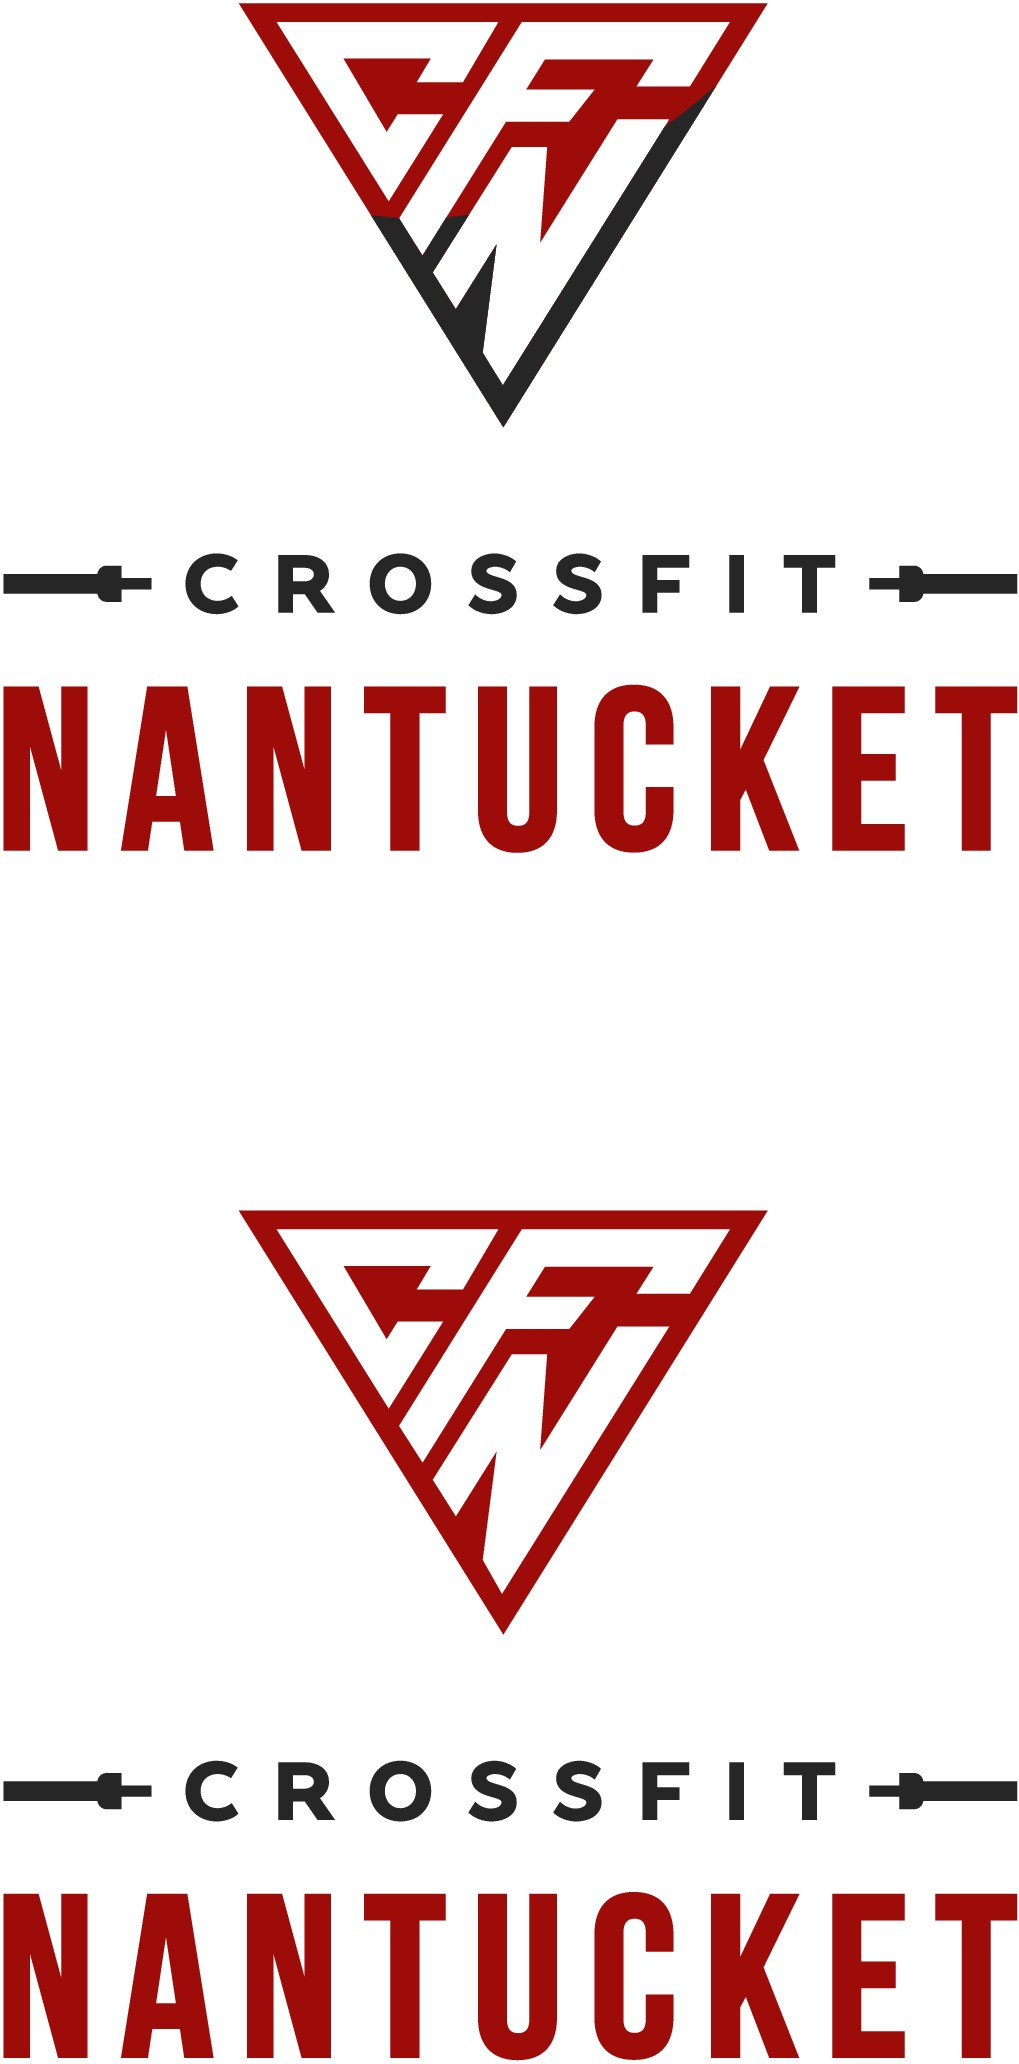 CrossFit Nantucket